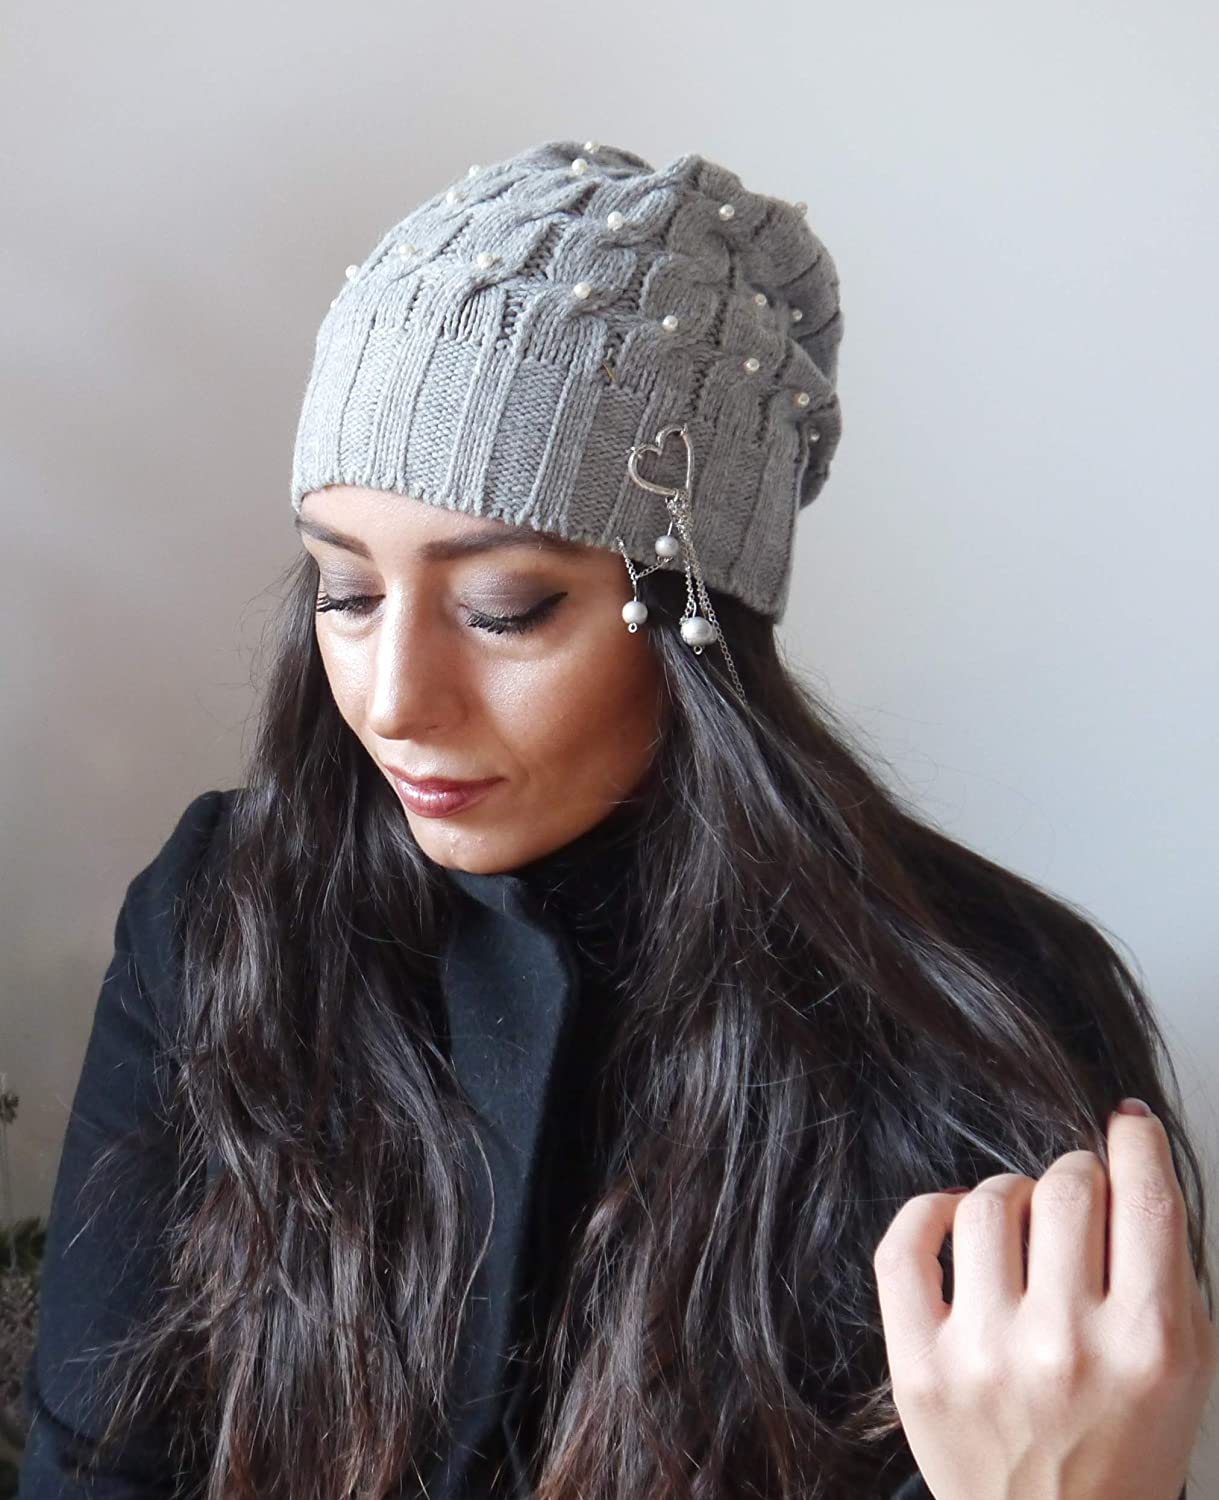 847dcbdd96b Amazon.com  Grey women winter beanie hat with pearls beaded slouch hat hand knit  hat women wool chunky hat ski gifts for woman cold weather hats  Handmade